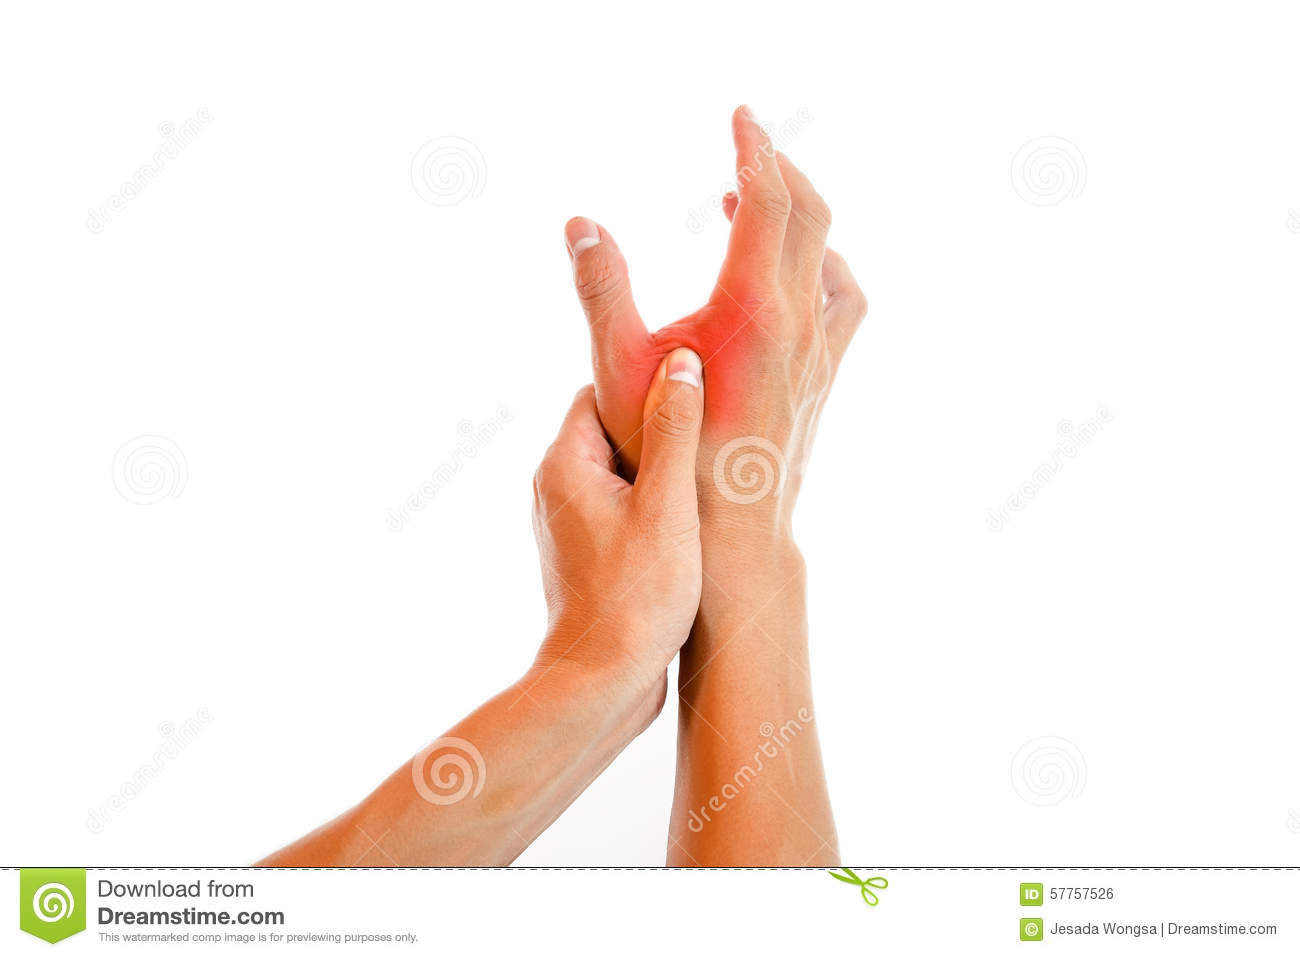 how to stop carpal tunnel pain